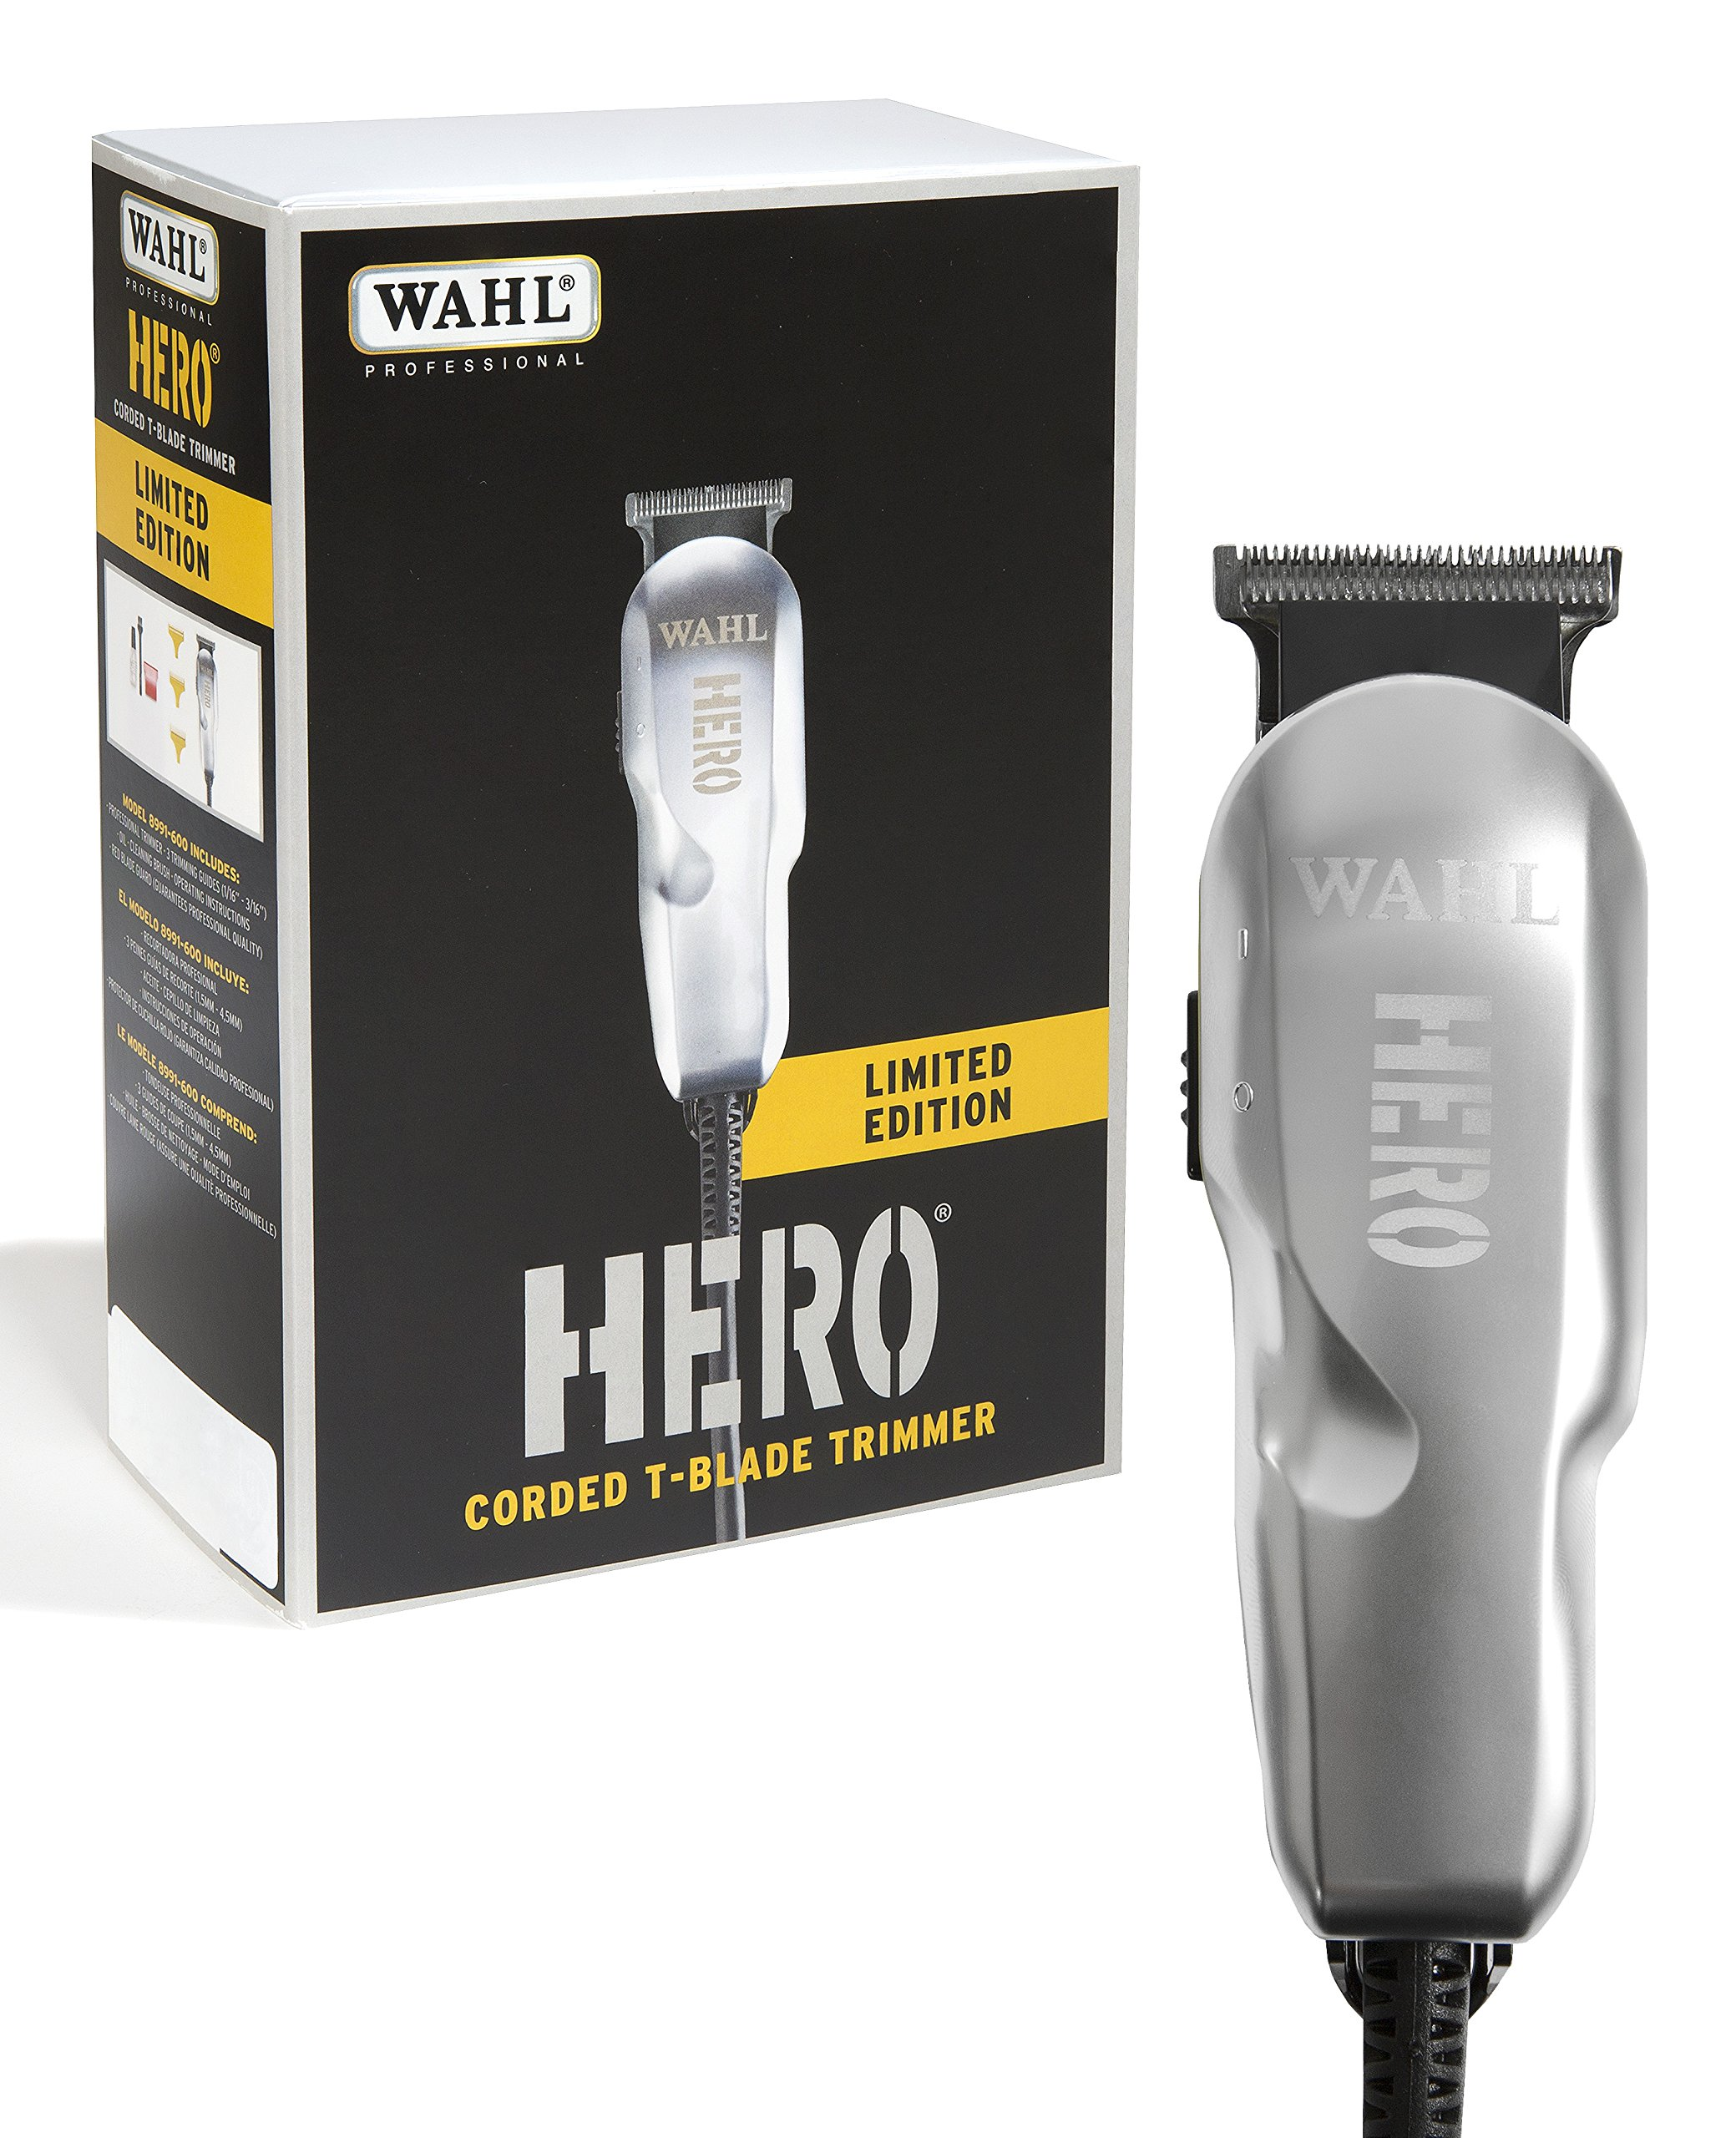 Wahl Professional Limited Edition Industrial Hero Trimmer #8991-600 - Great for Barbers and Stylists - Rotary motor T-Blade trimmer - Includes 3 Cutting Guides, Oil, and Cleaning Brush